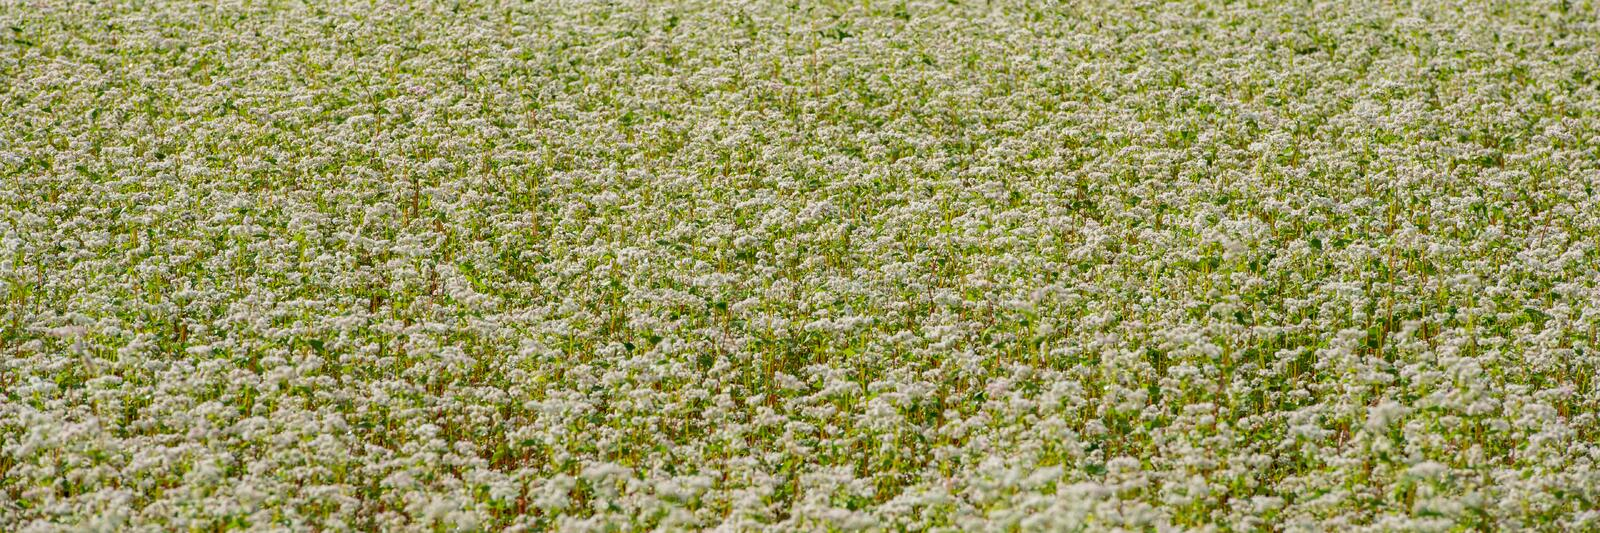 Field of flowering buckwheat. Banner for design stock photography